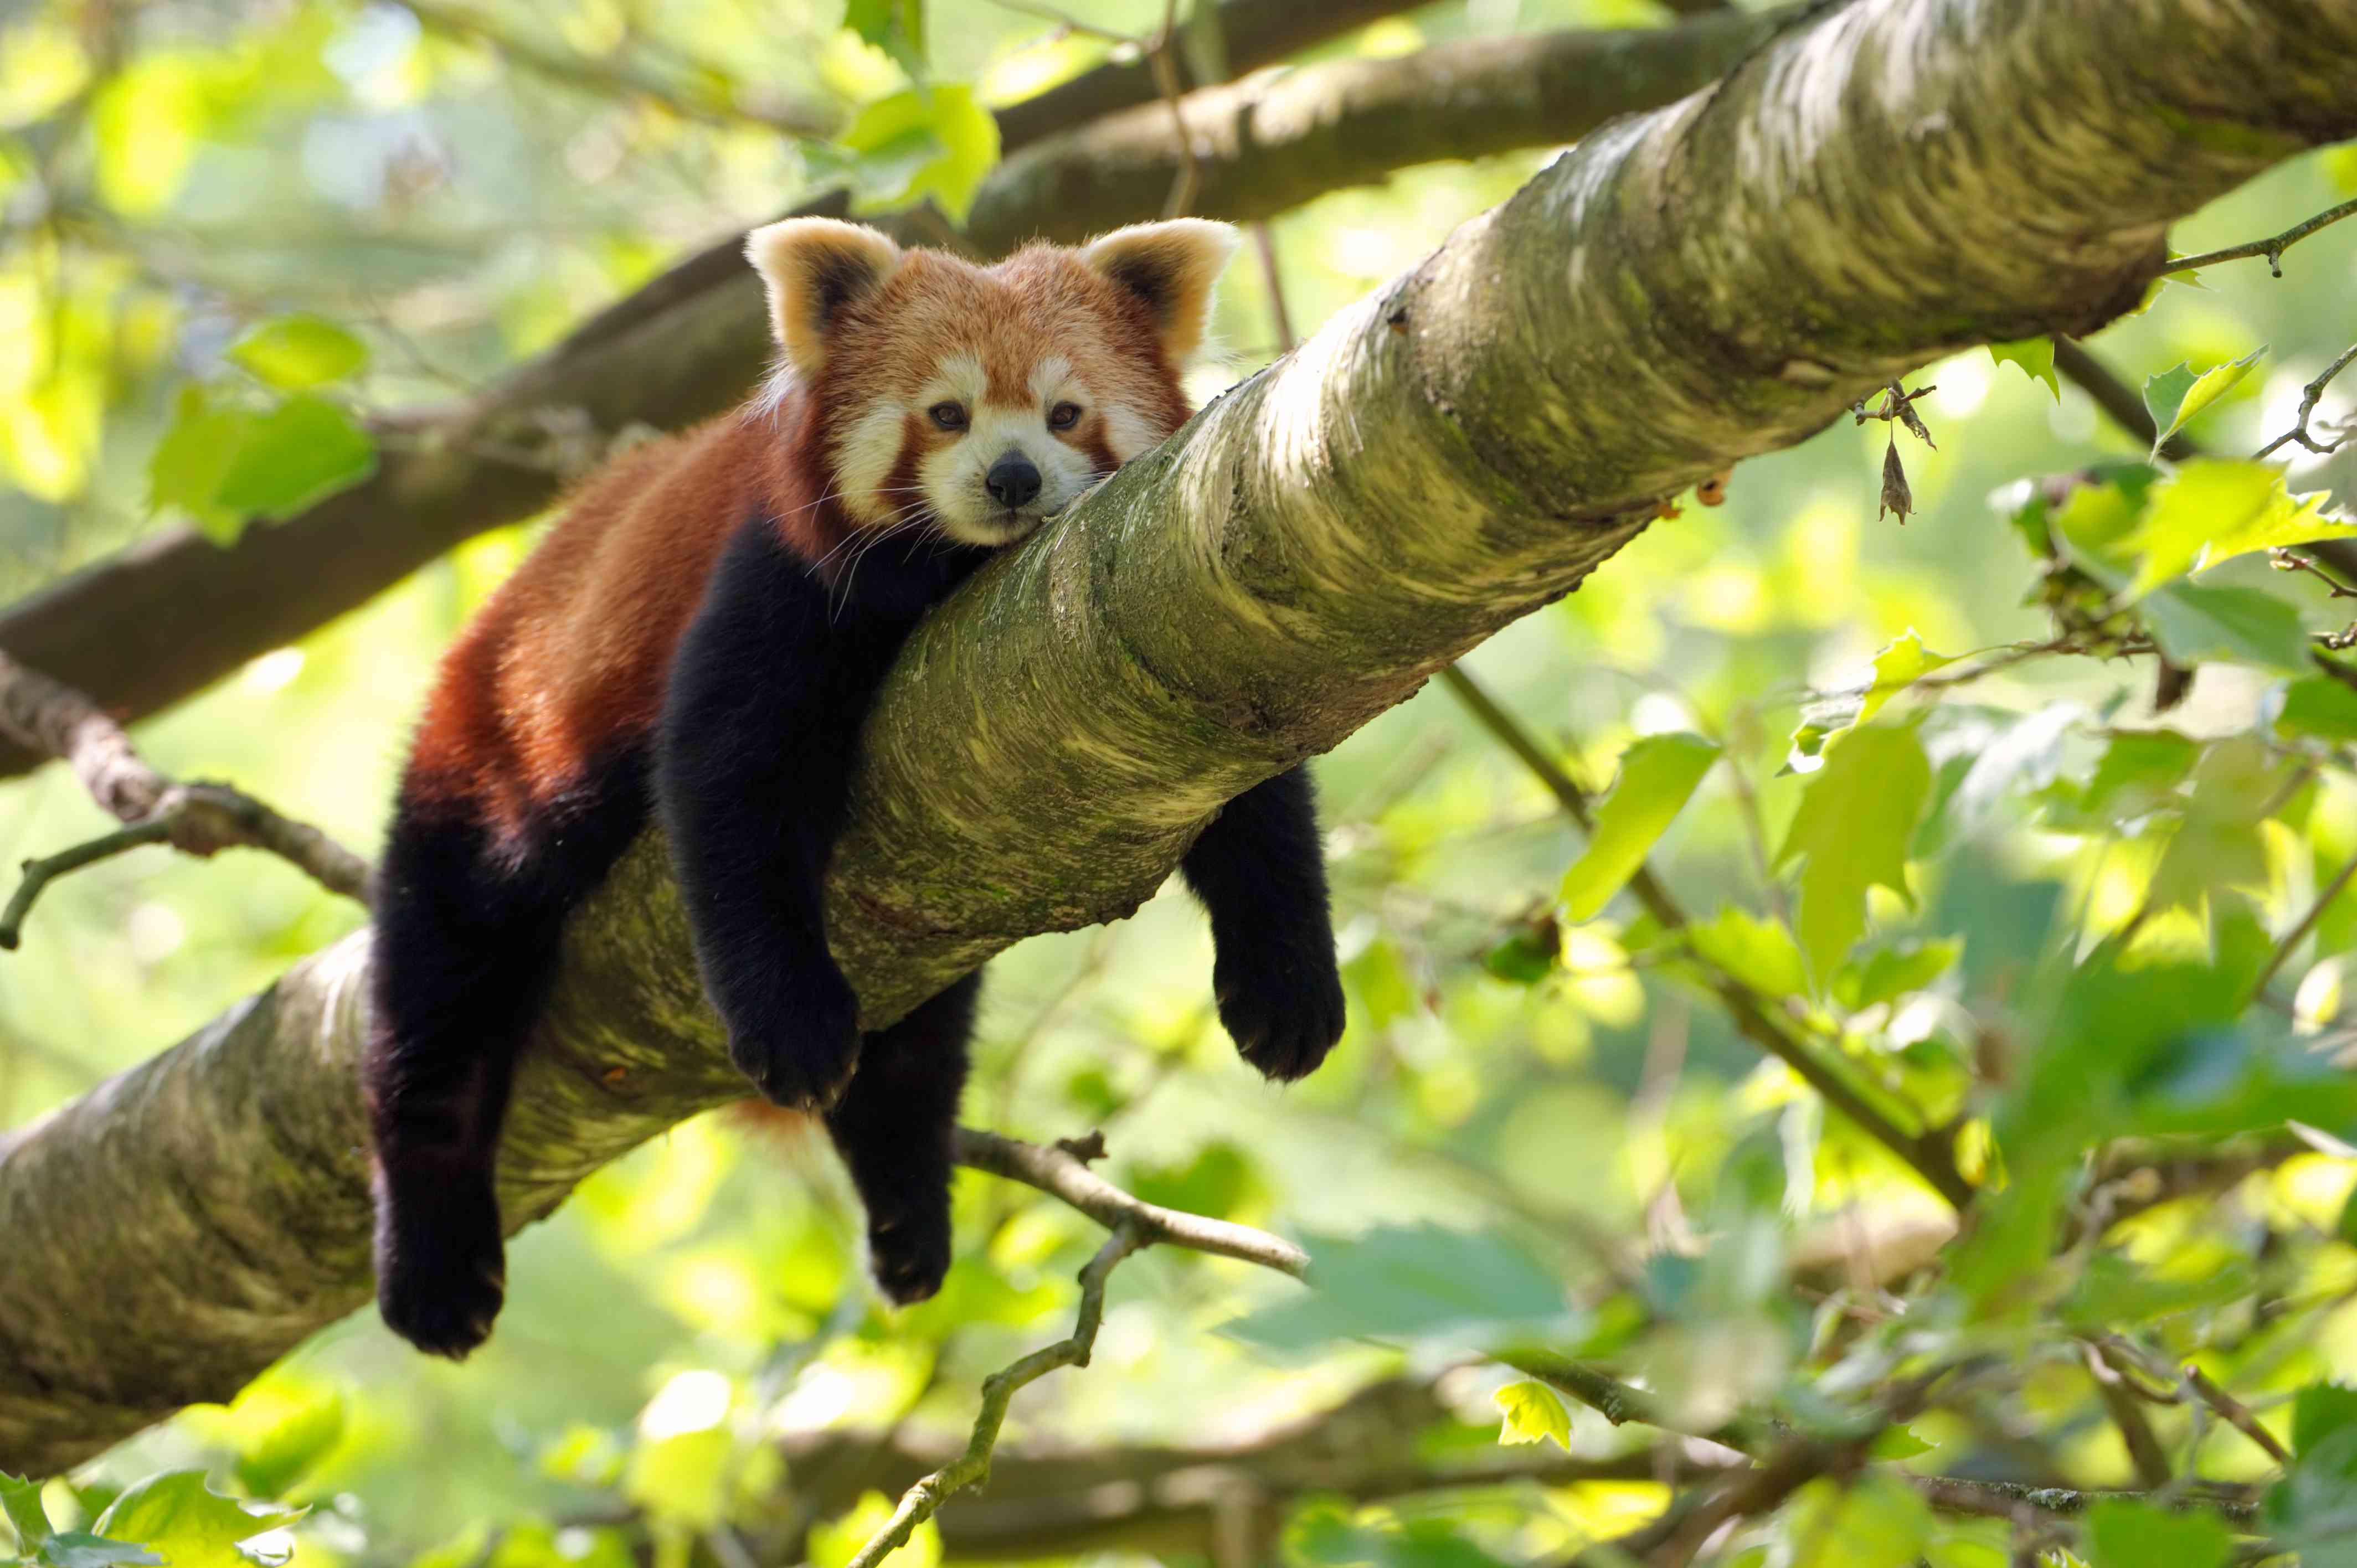 Red panda relaxes on tree branch with limbs hanging